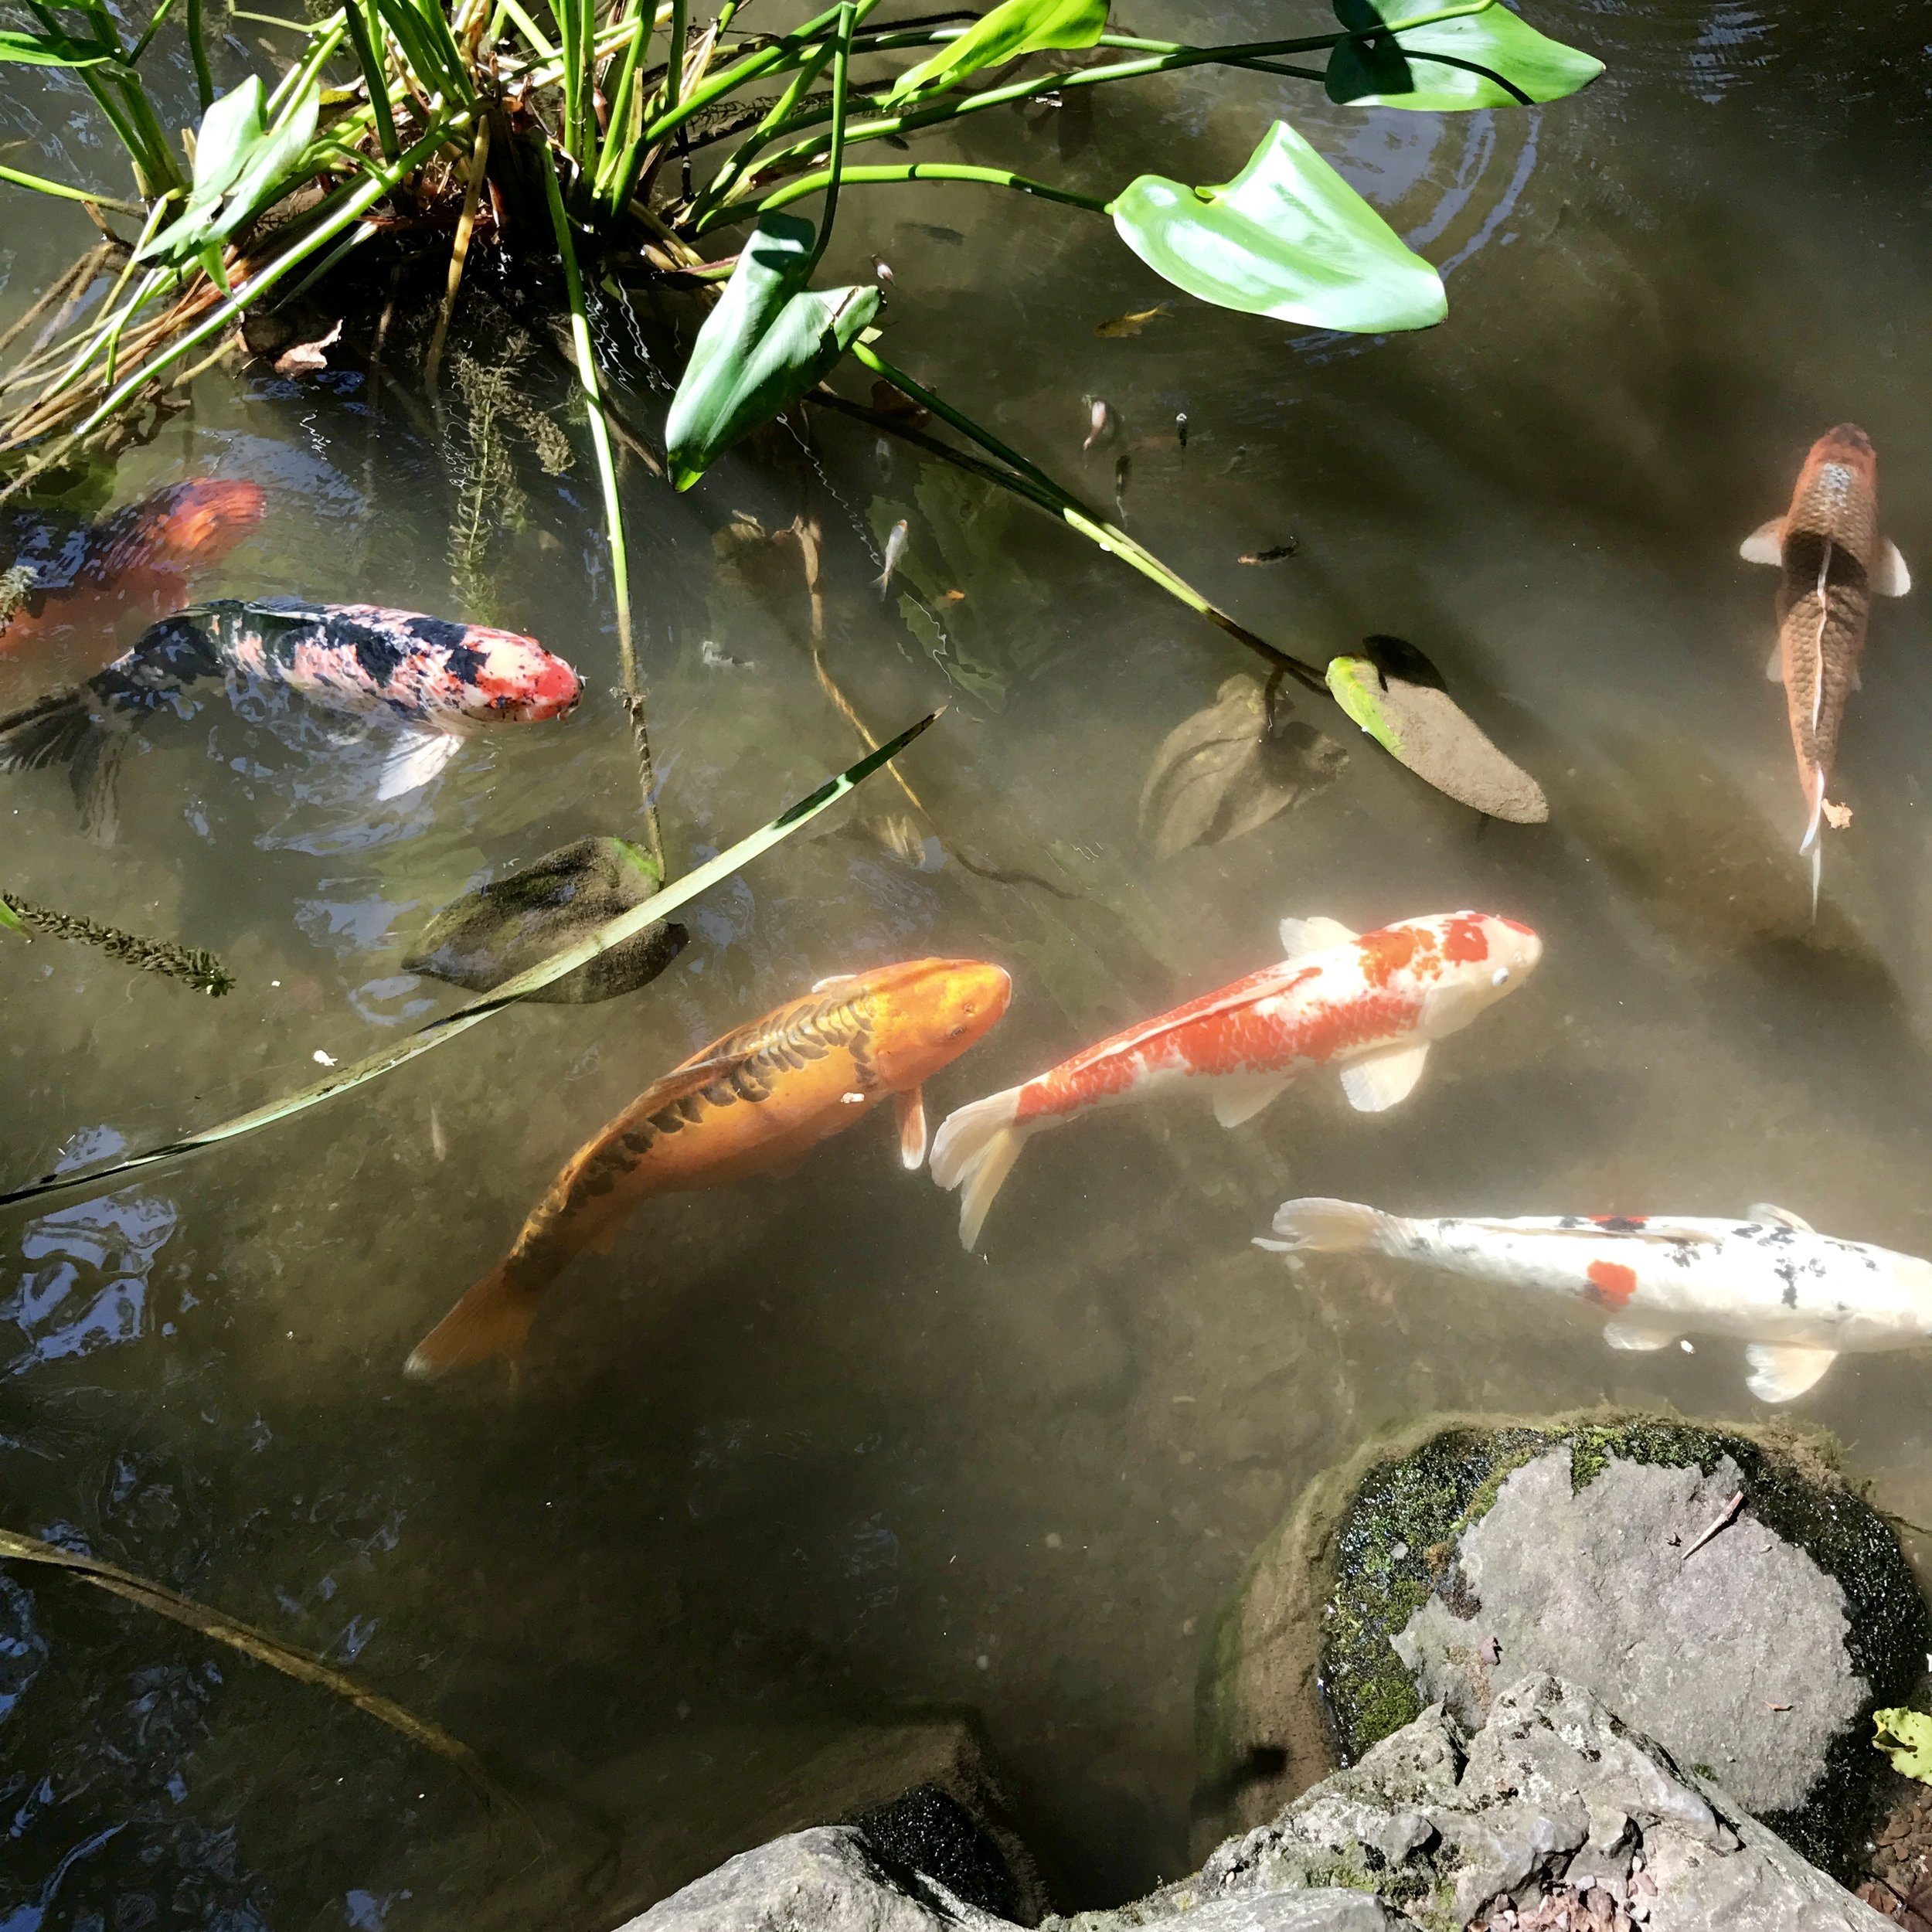 Random fact from last night's tuck in/bedtime reading: Koi can live up to 200 years. WTF